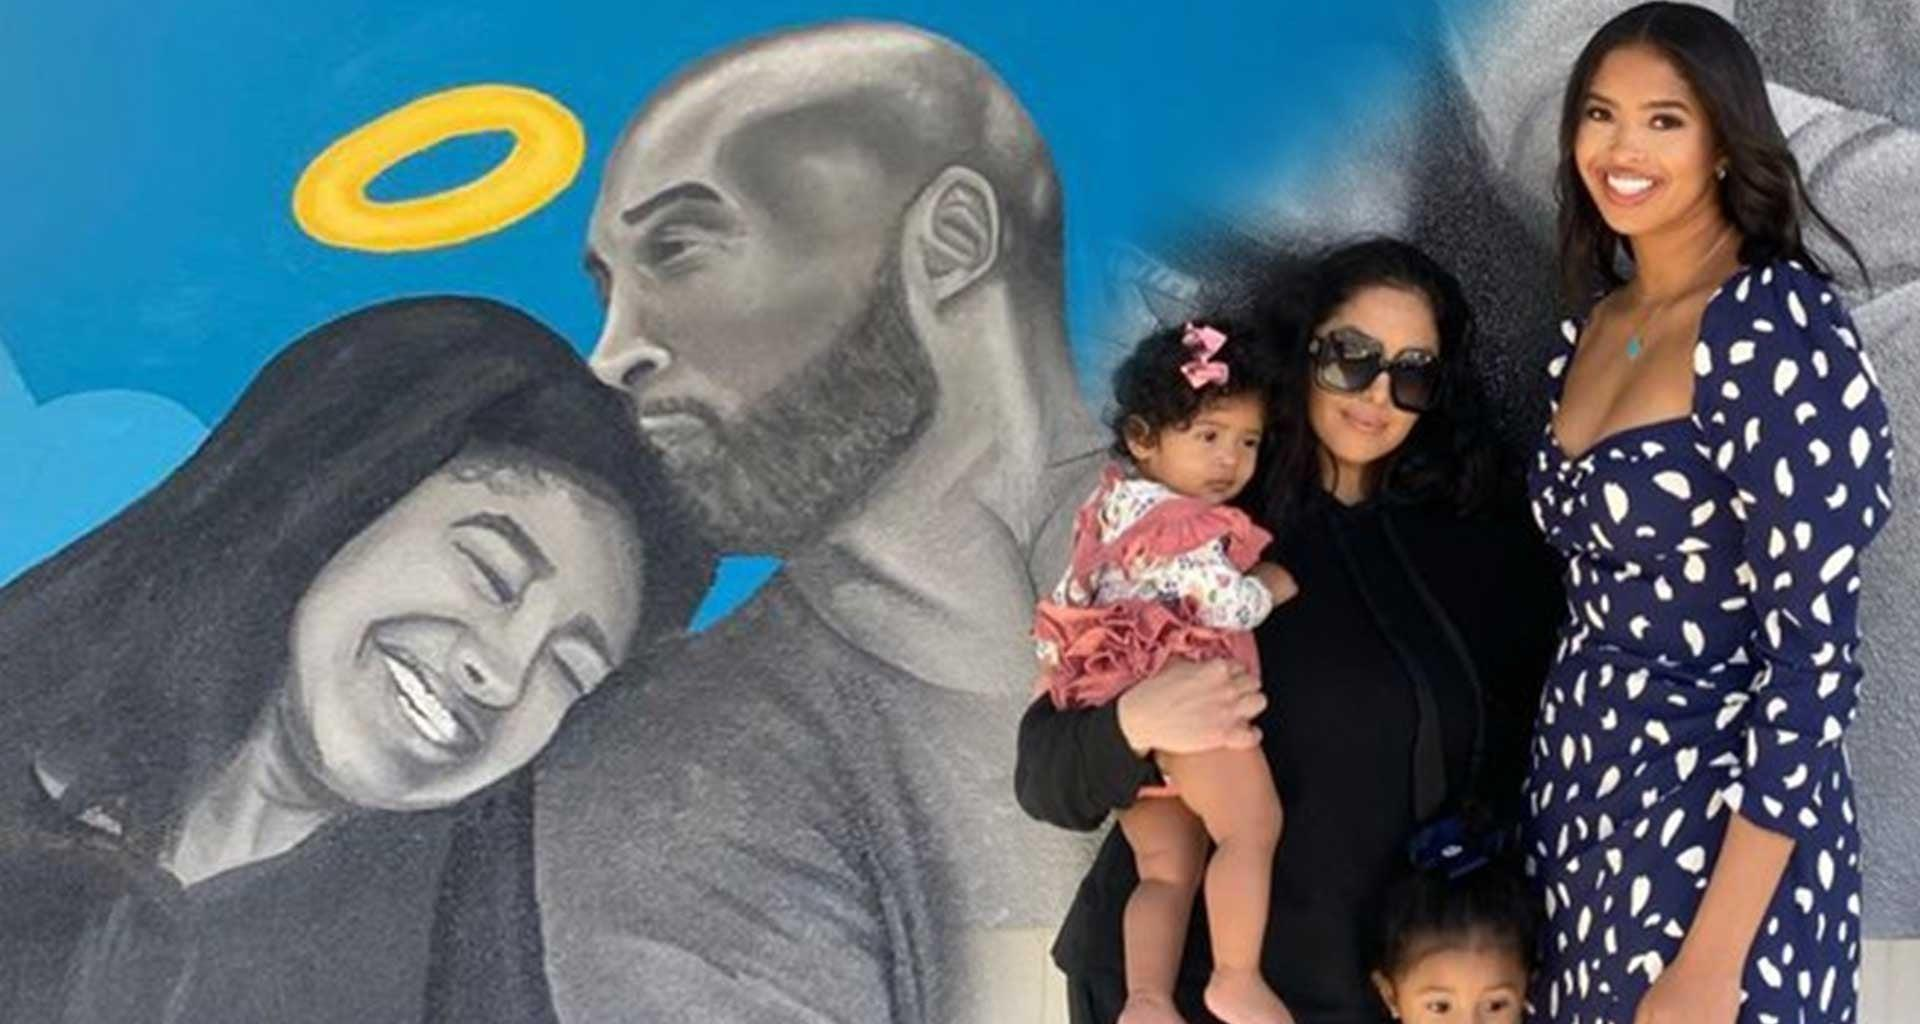 Vanessa Bryant Is Celebrating Easter With Baby Capri And Bianka - See The Sweet Video